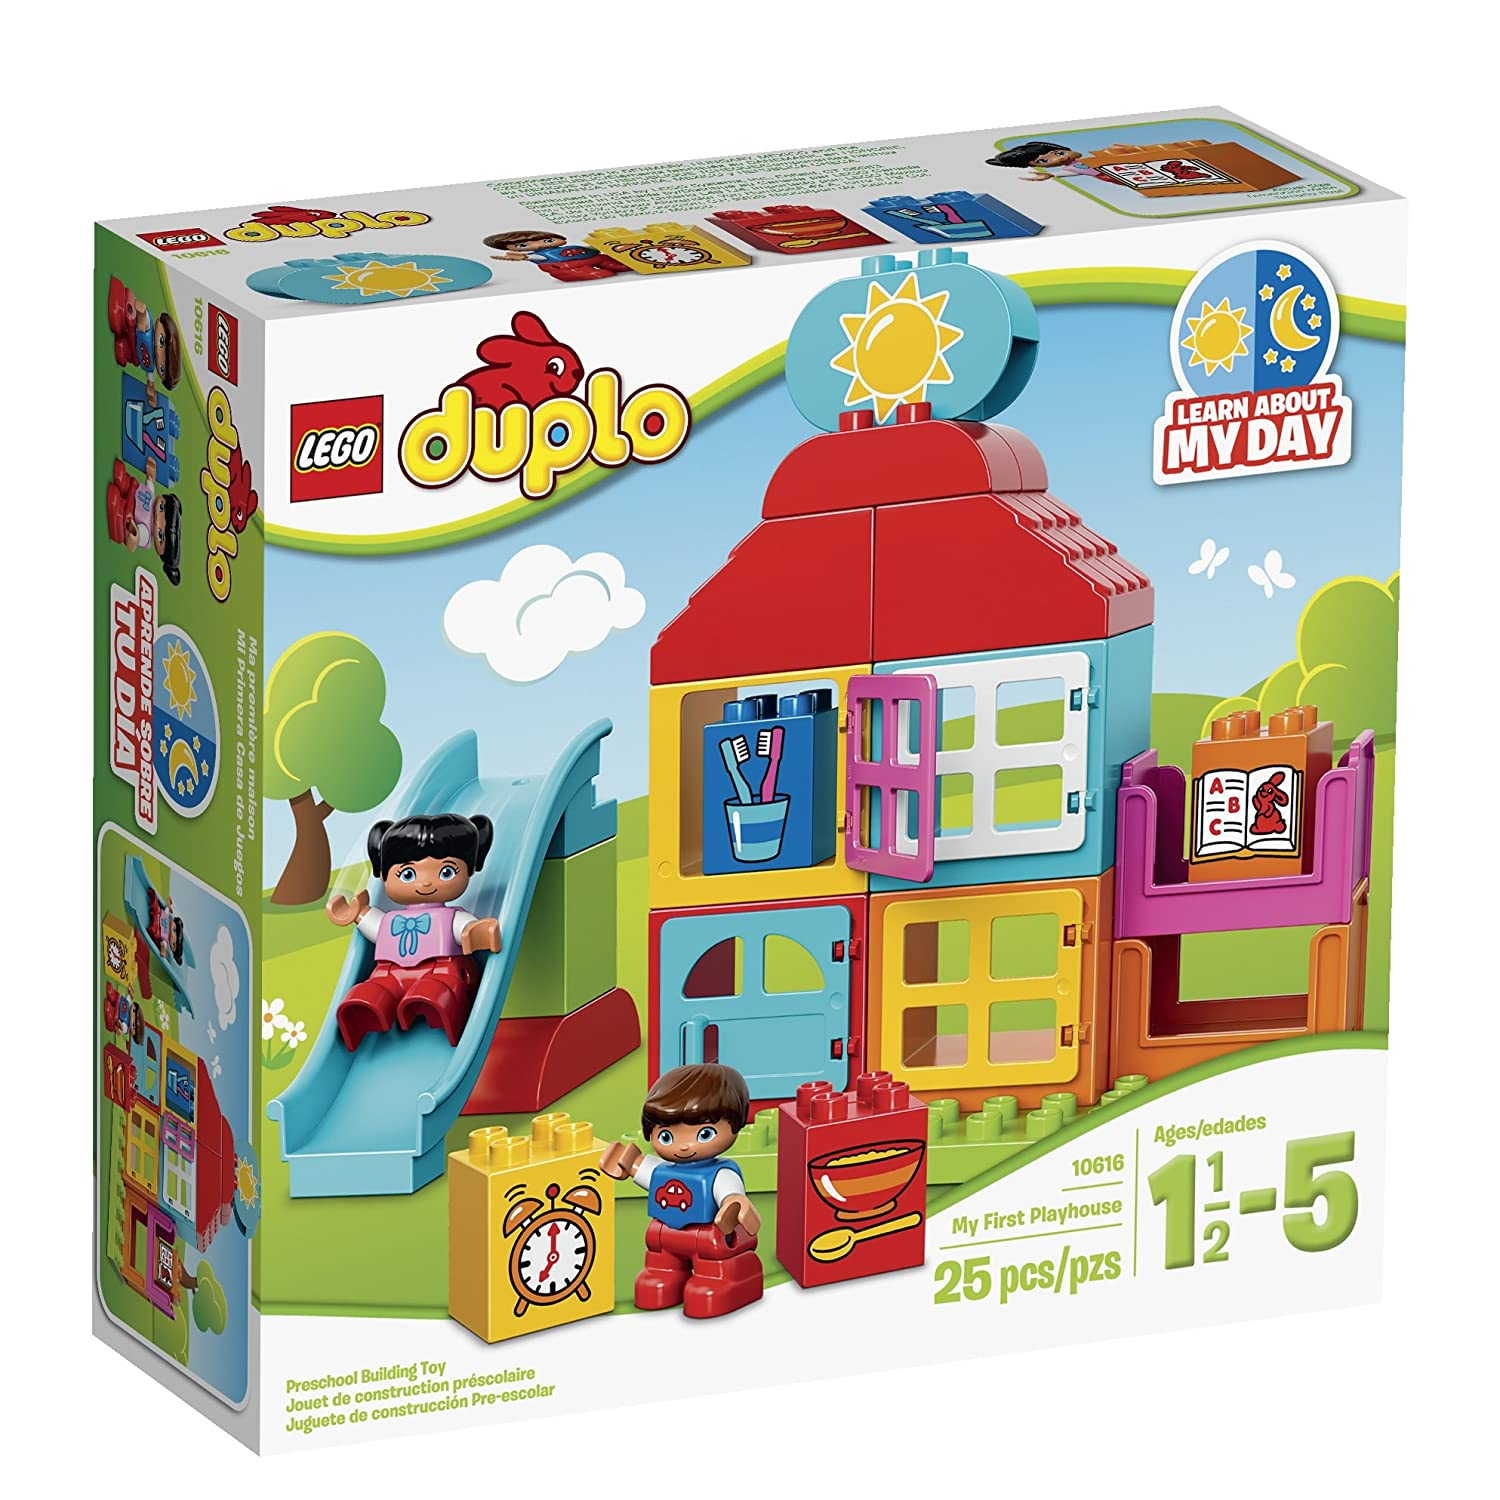 Amazoncom Lego Duplo My First Playhouse 10616 Toy For 1 Year Old